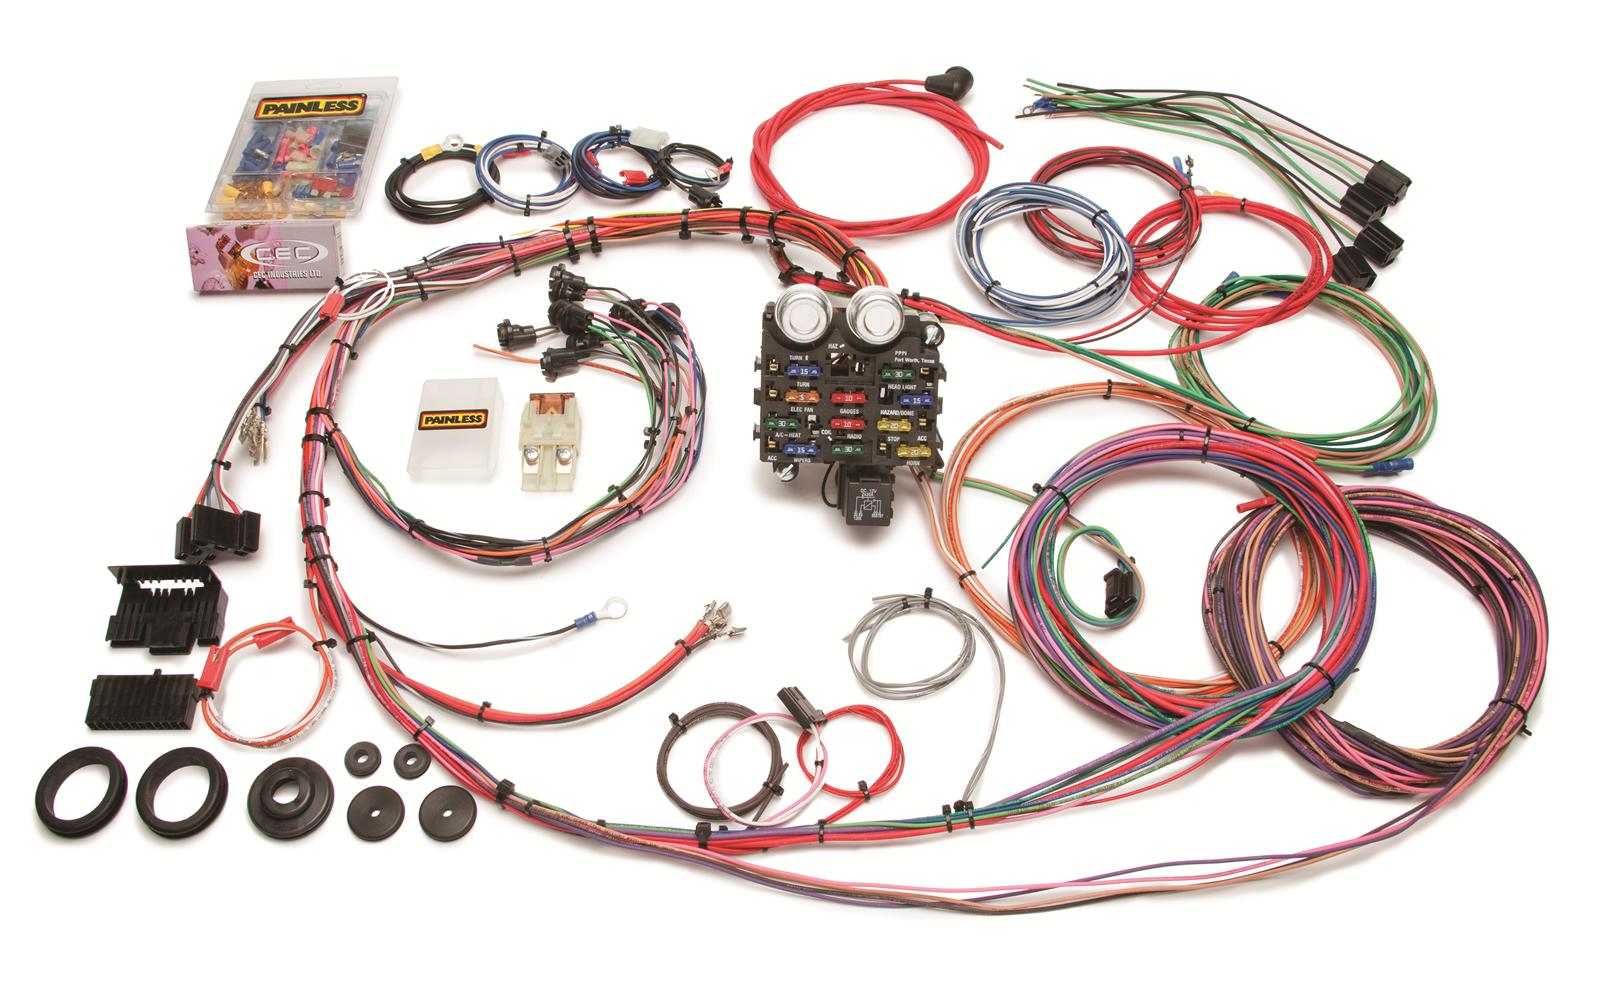 painless performance 19 circuit gmc chevy truck harnesses 10112 rh summitracing com  5.3 chevy painless wiring harness